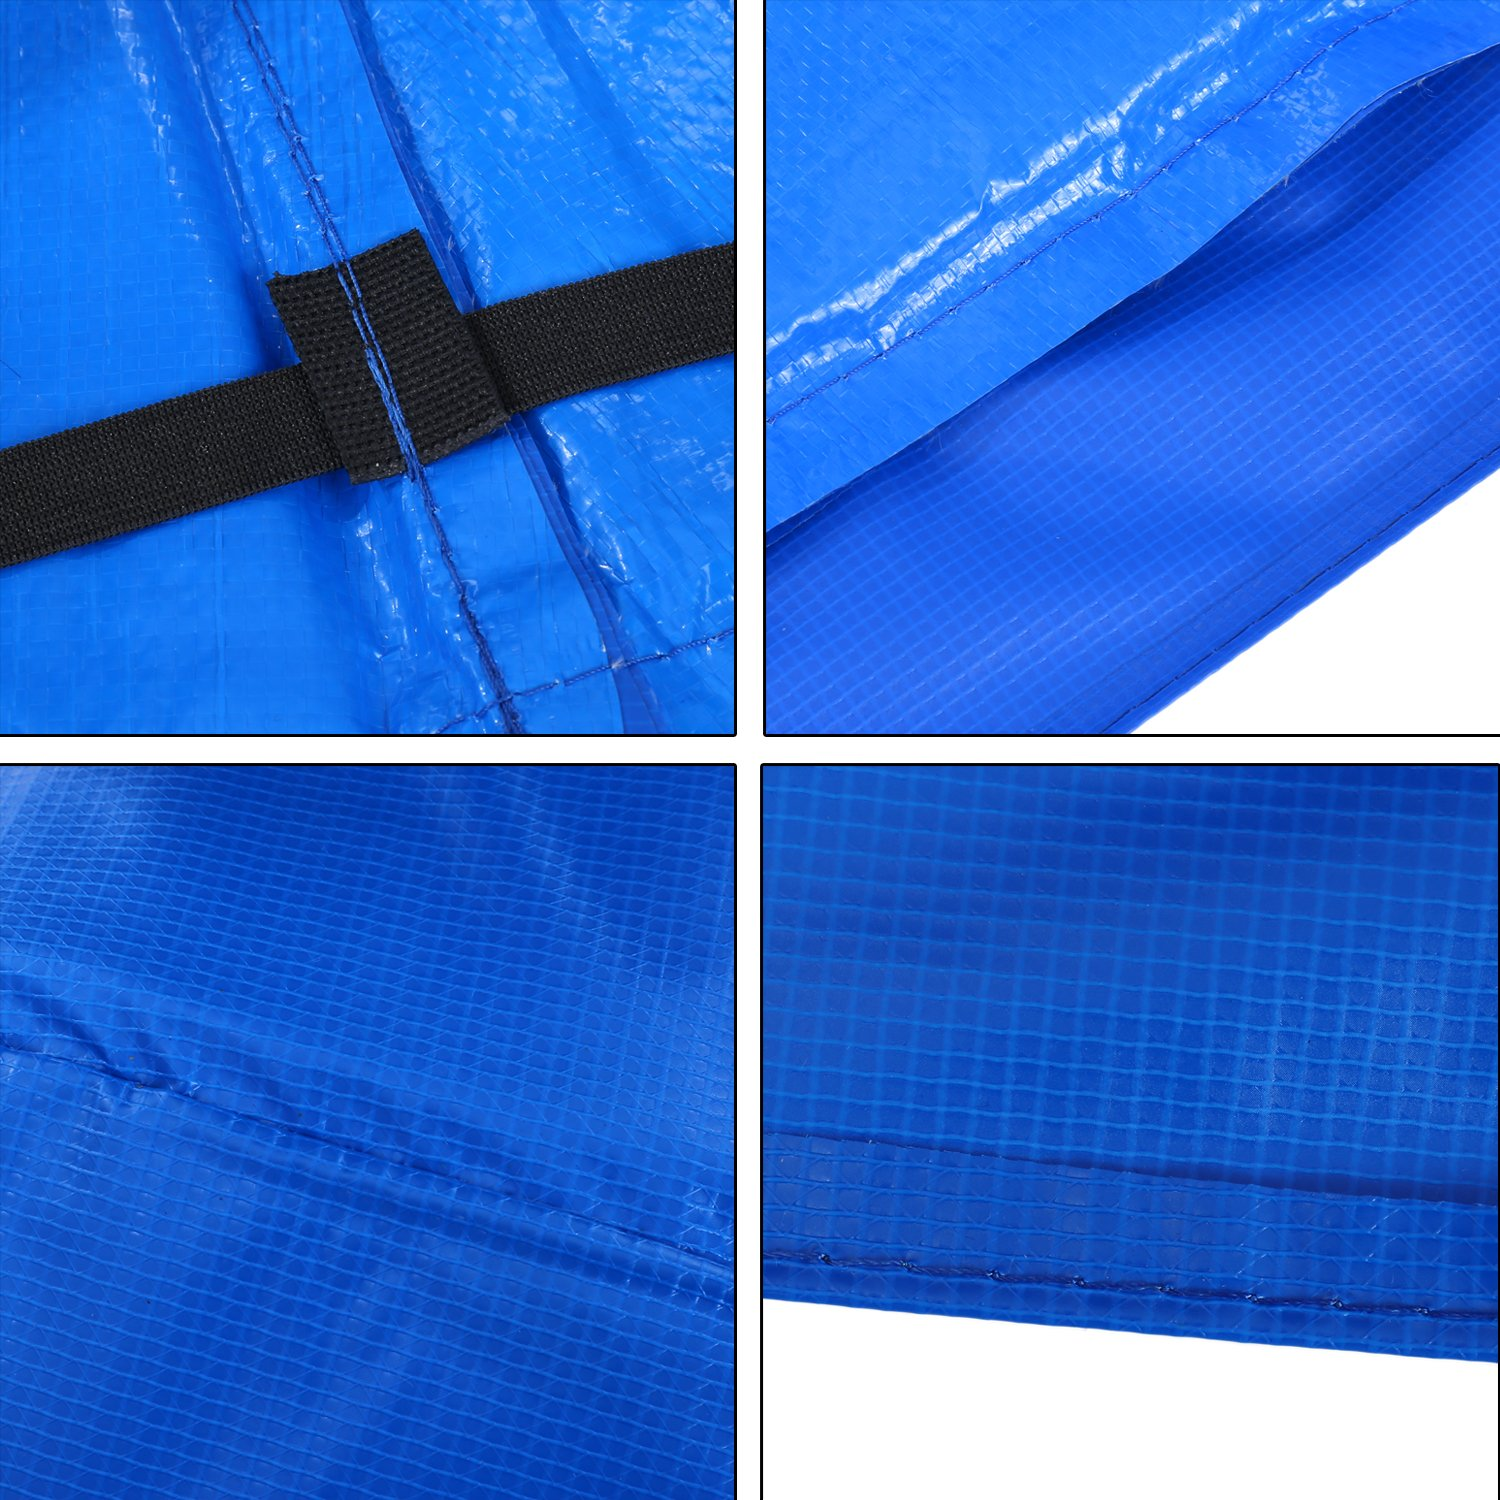 15 14 12 10 Ft Replacement Trampoline Surround PVC Pad Foam Safety Spring Cover Padding Pads (Blue, 15 Ft) by Zafuar Sports (Image #3)